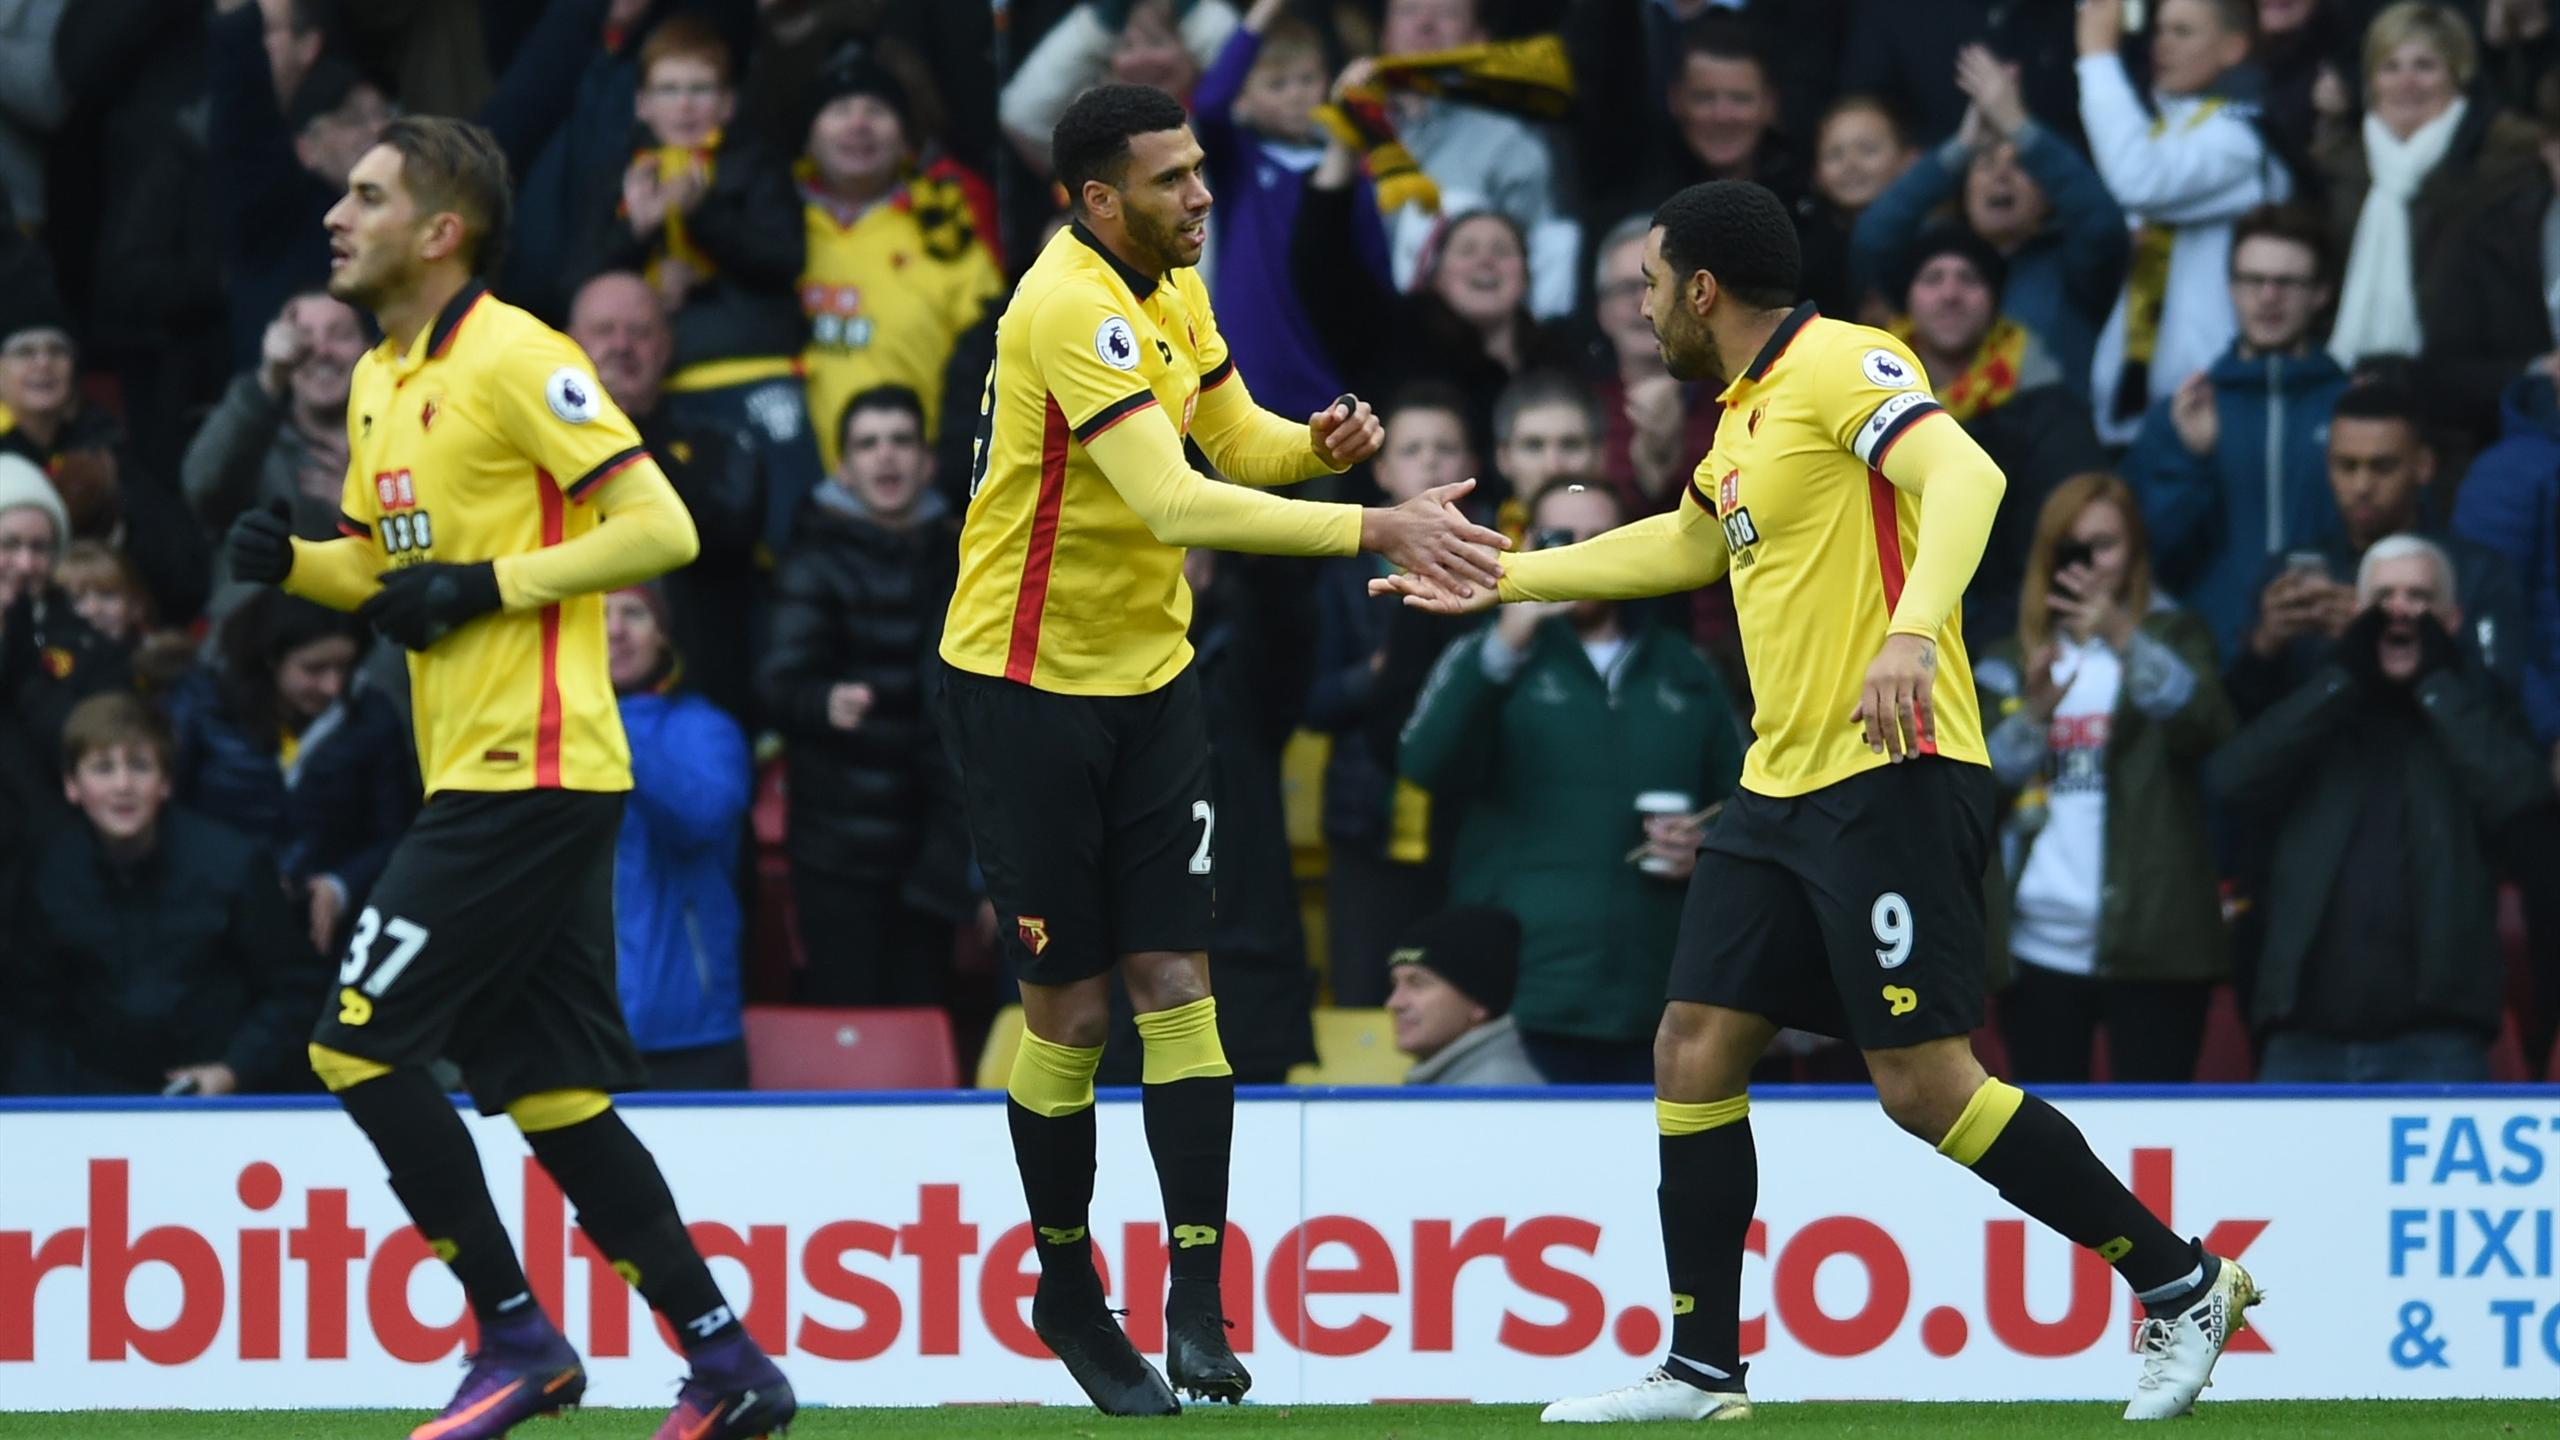 Etienne Capoue celebrates scoring their first goal